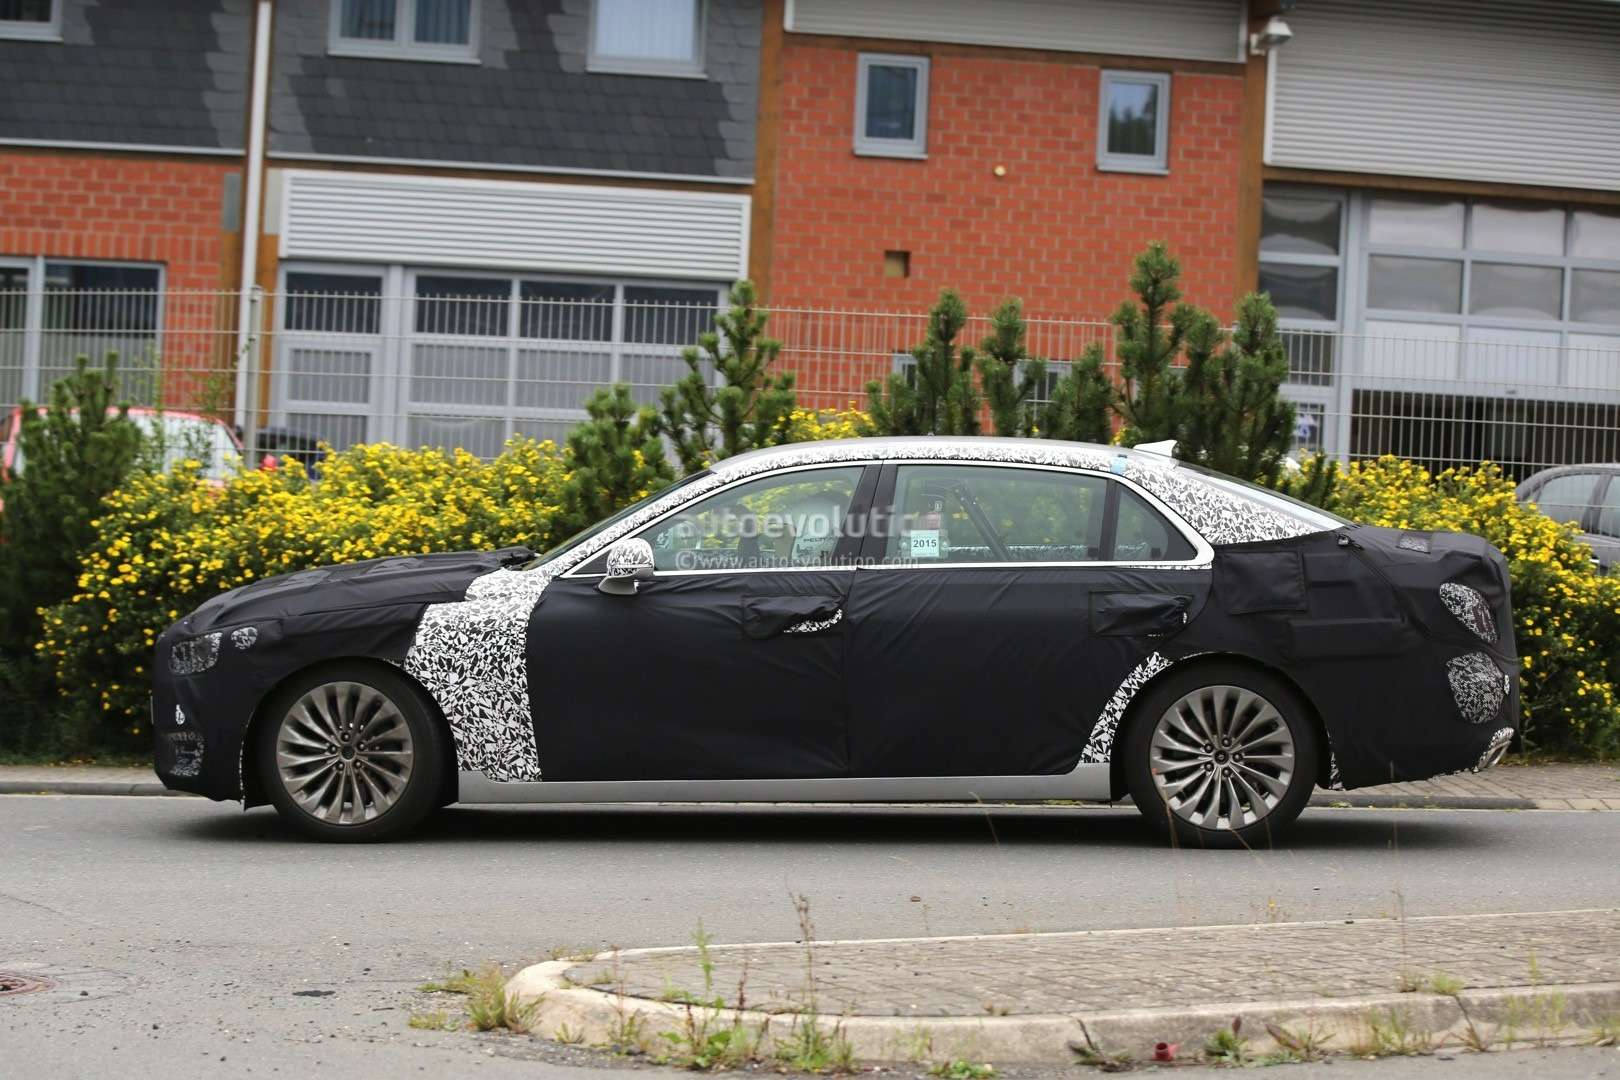 2017-hyundai-equus-spied-out-testing-in-germany-photo-gallery_11